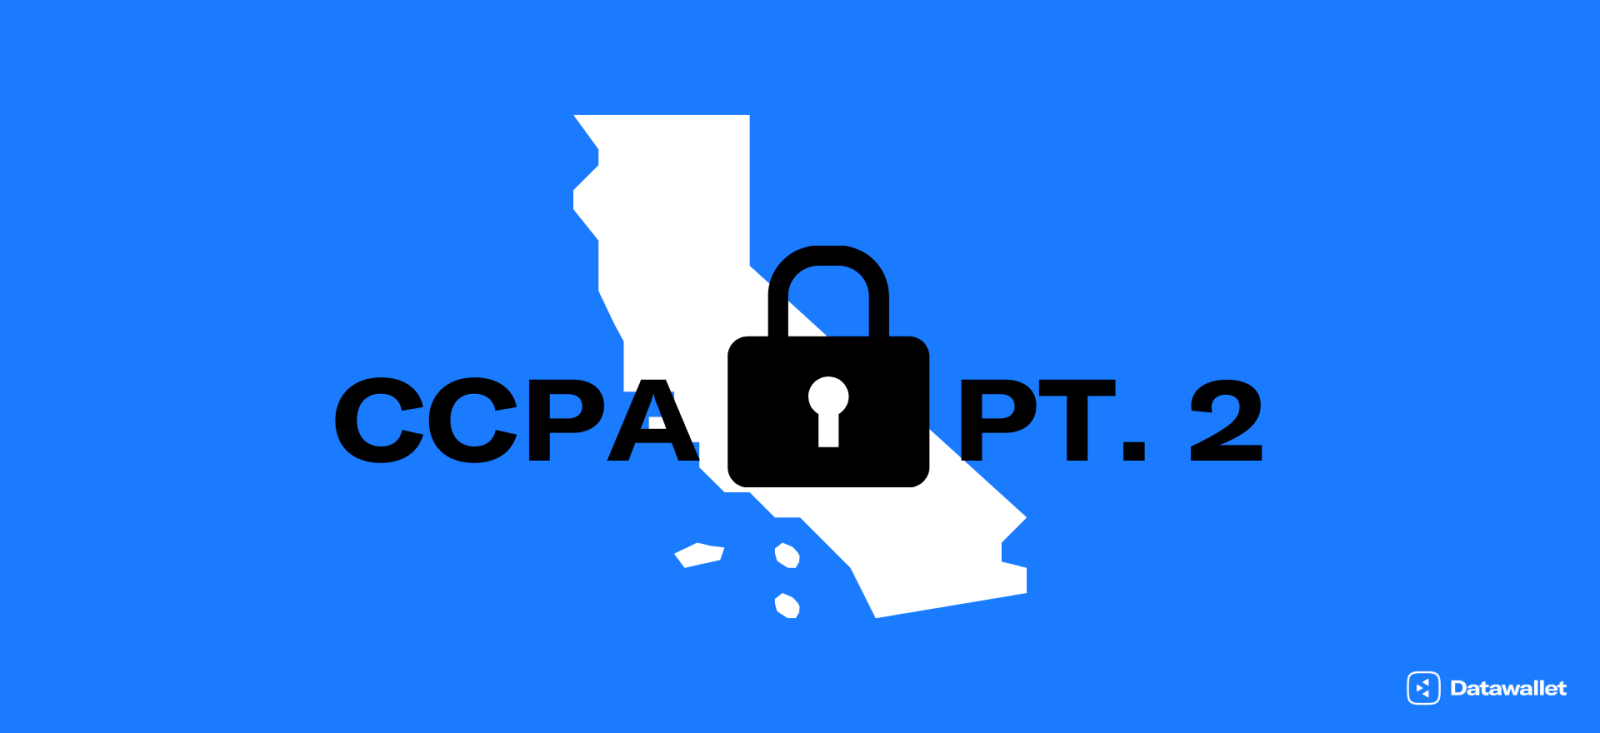 CCPA Compliance: 4 Things You Should Know - Part 2